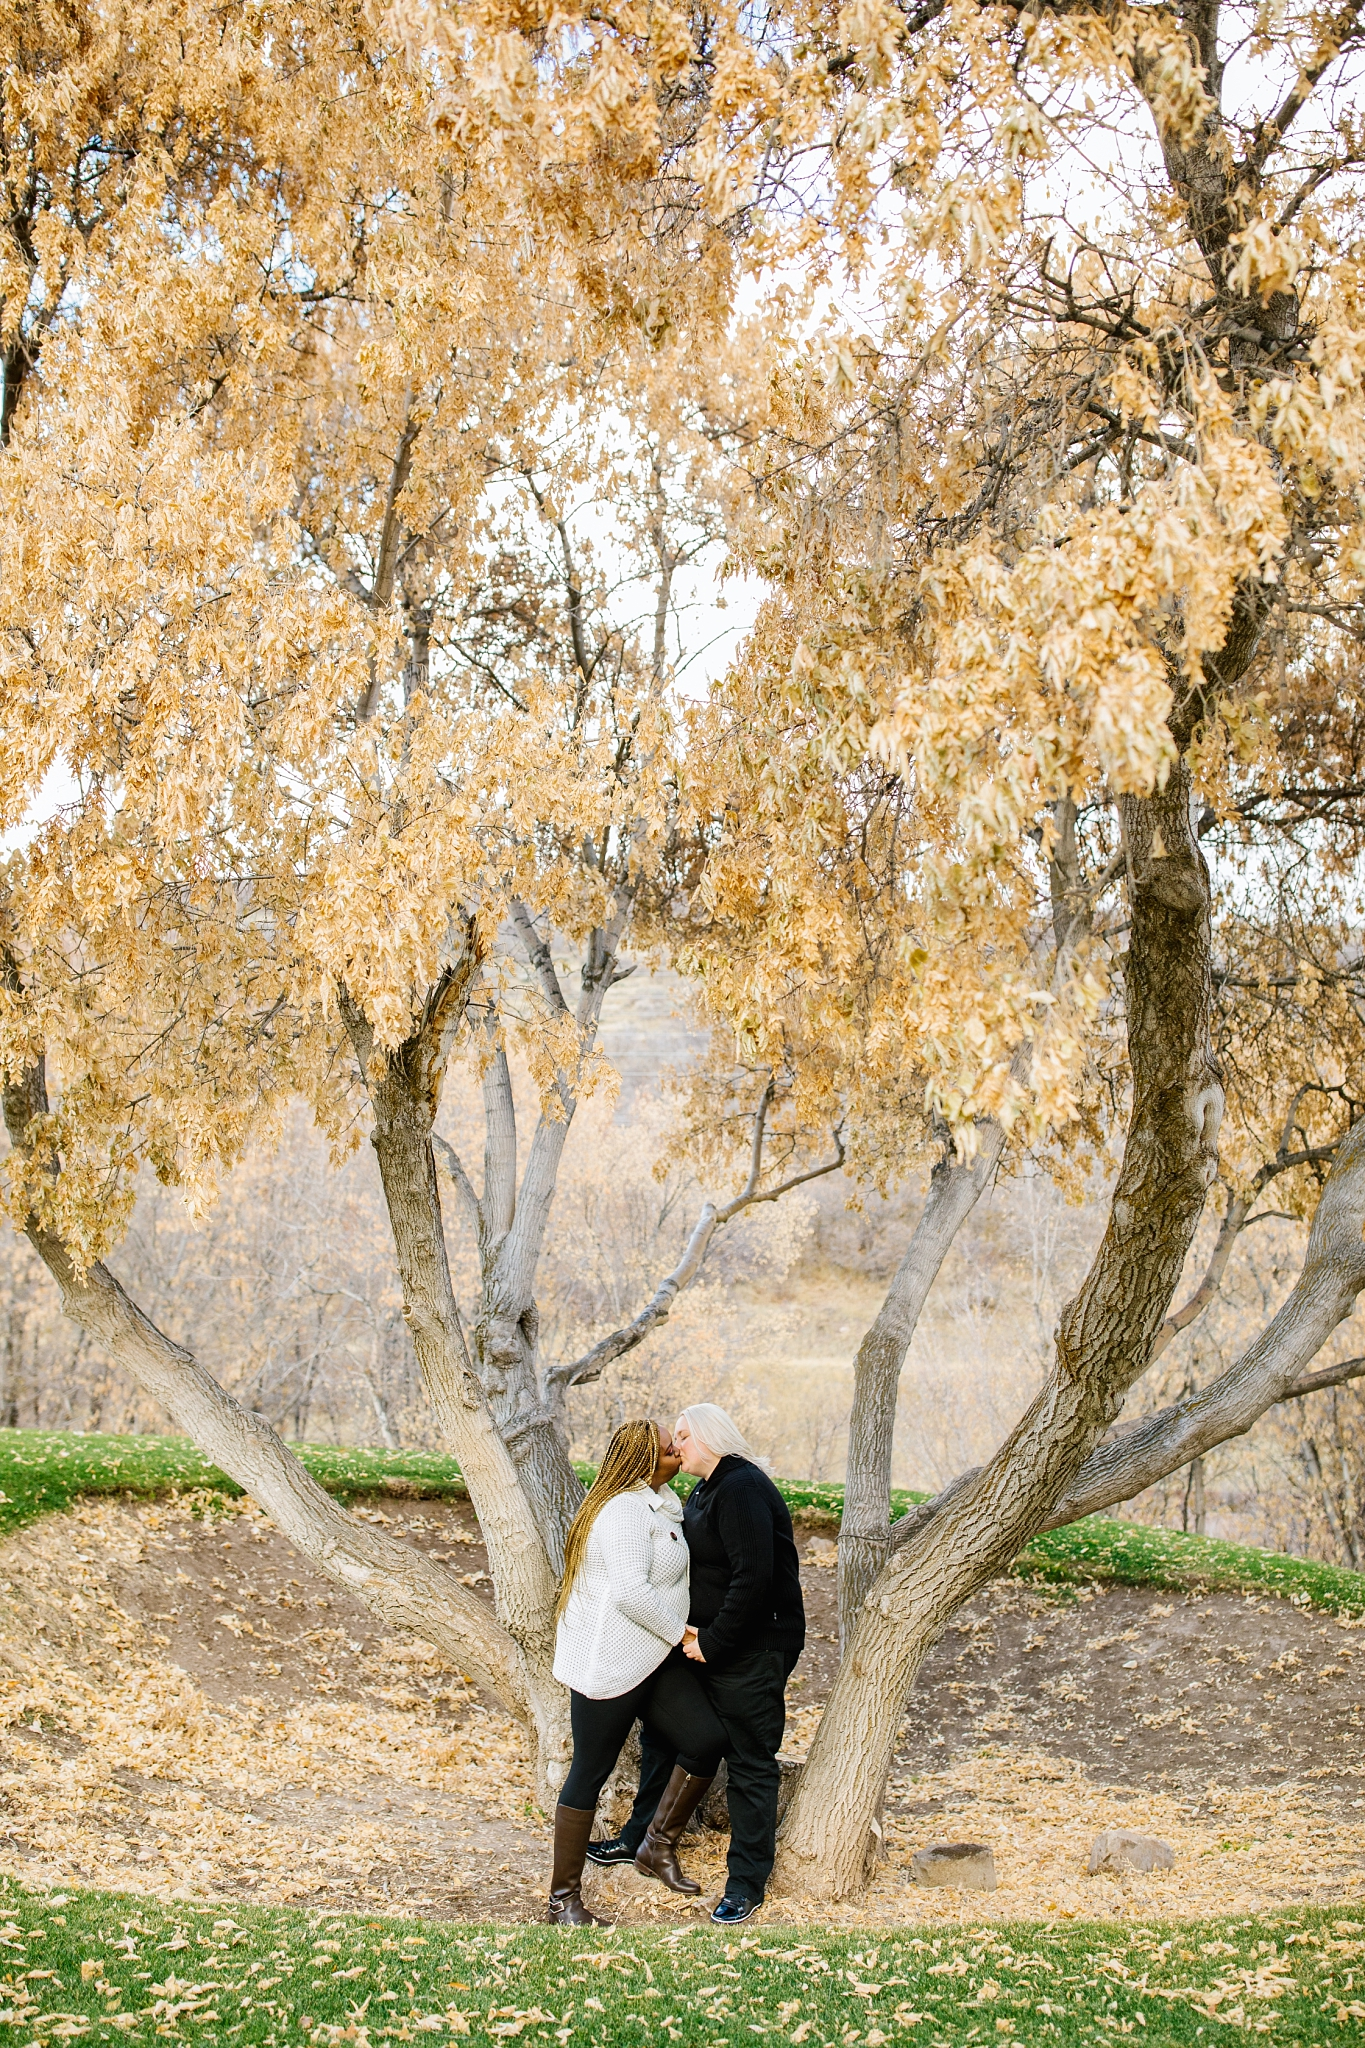 LisaTiffany2018-103_Lizzie-B-Imagery-Utah-Family-Photographer-Lifestyle-Photography-Salt-Lake-City-Park-City-Utah-County-Engagements-Wedding-Photographer.jpg